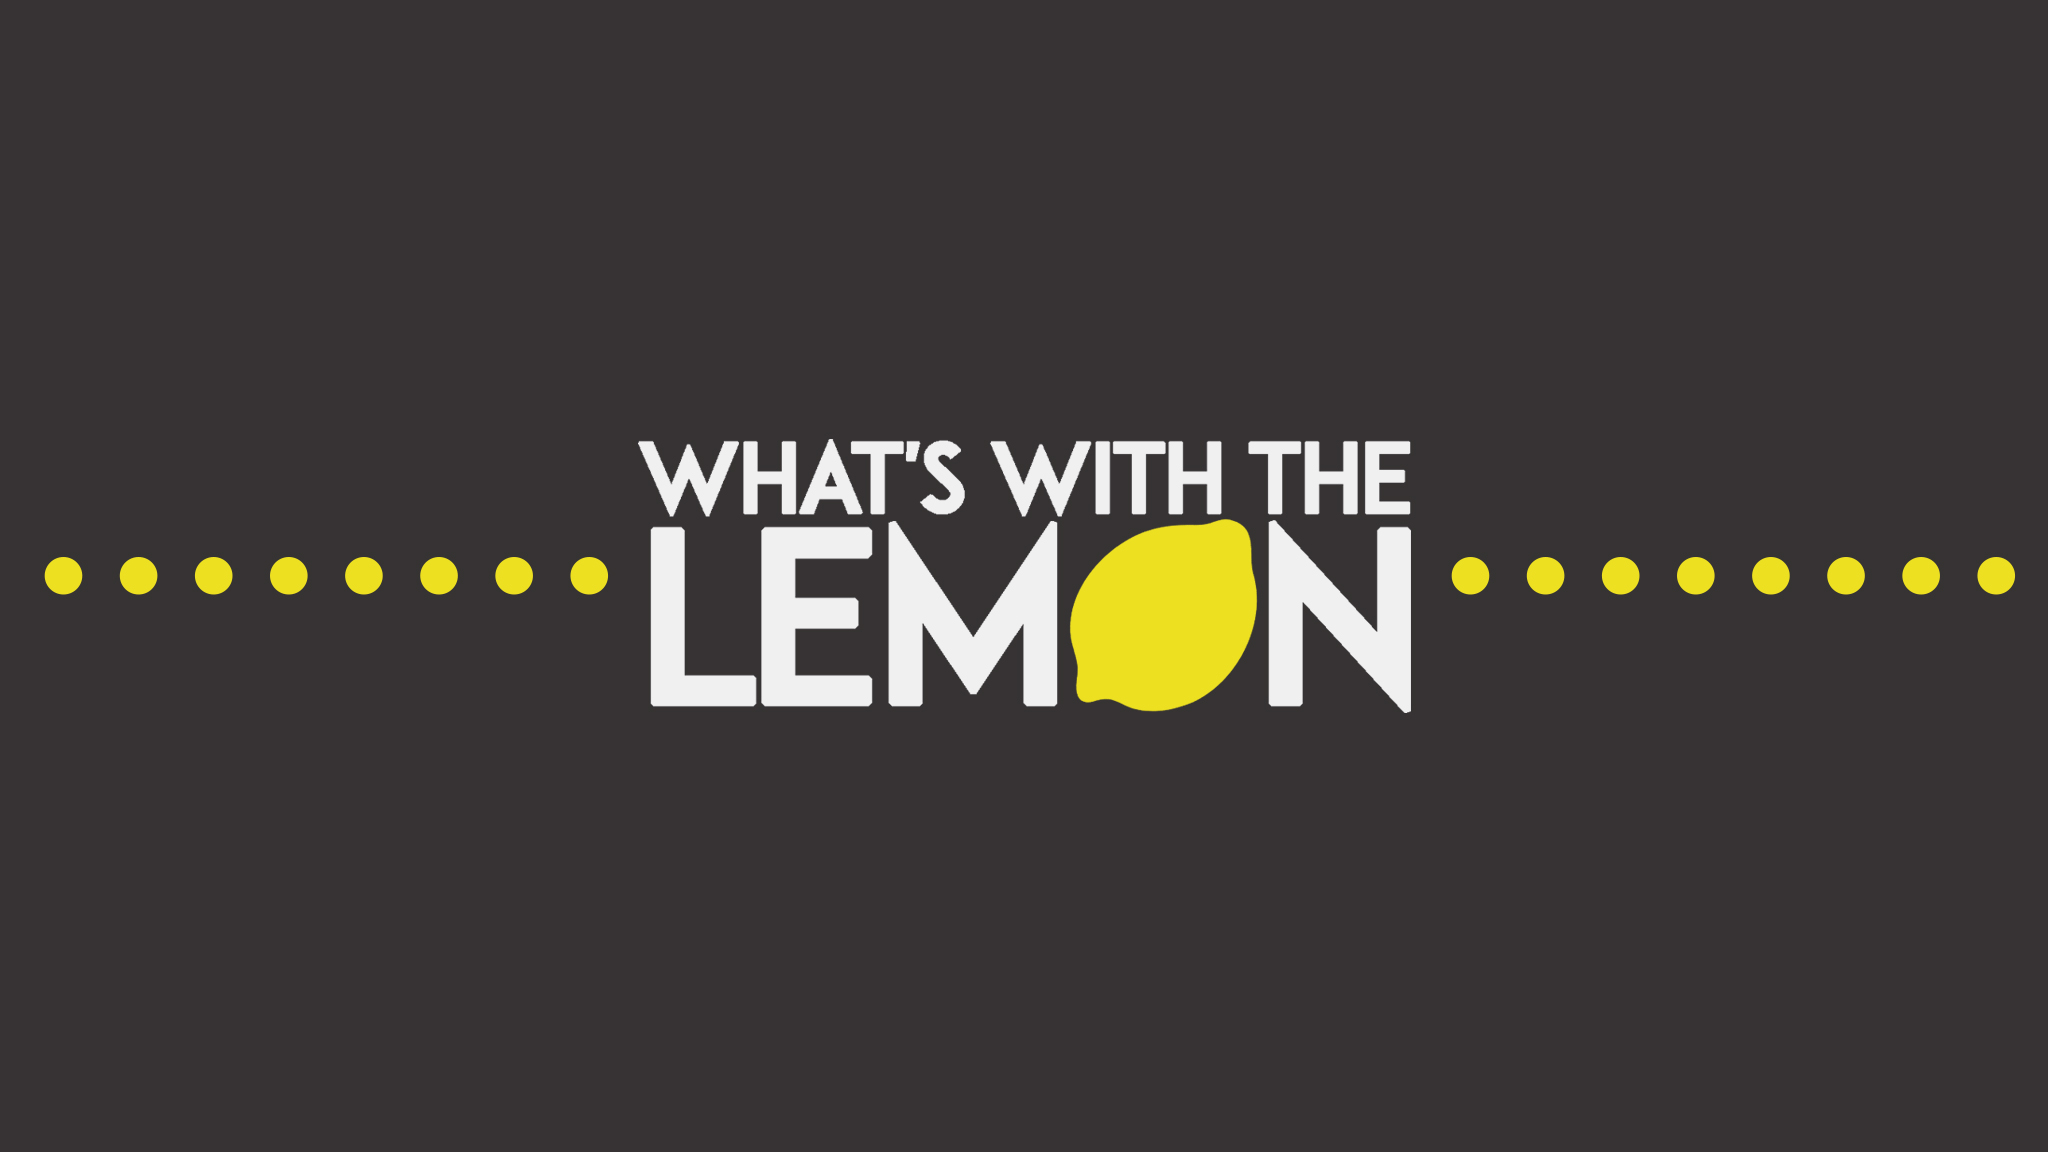 whats-with-the-lemon.jpg